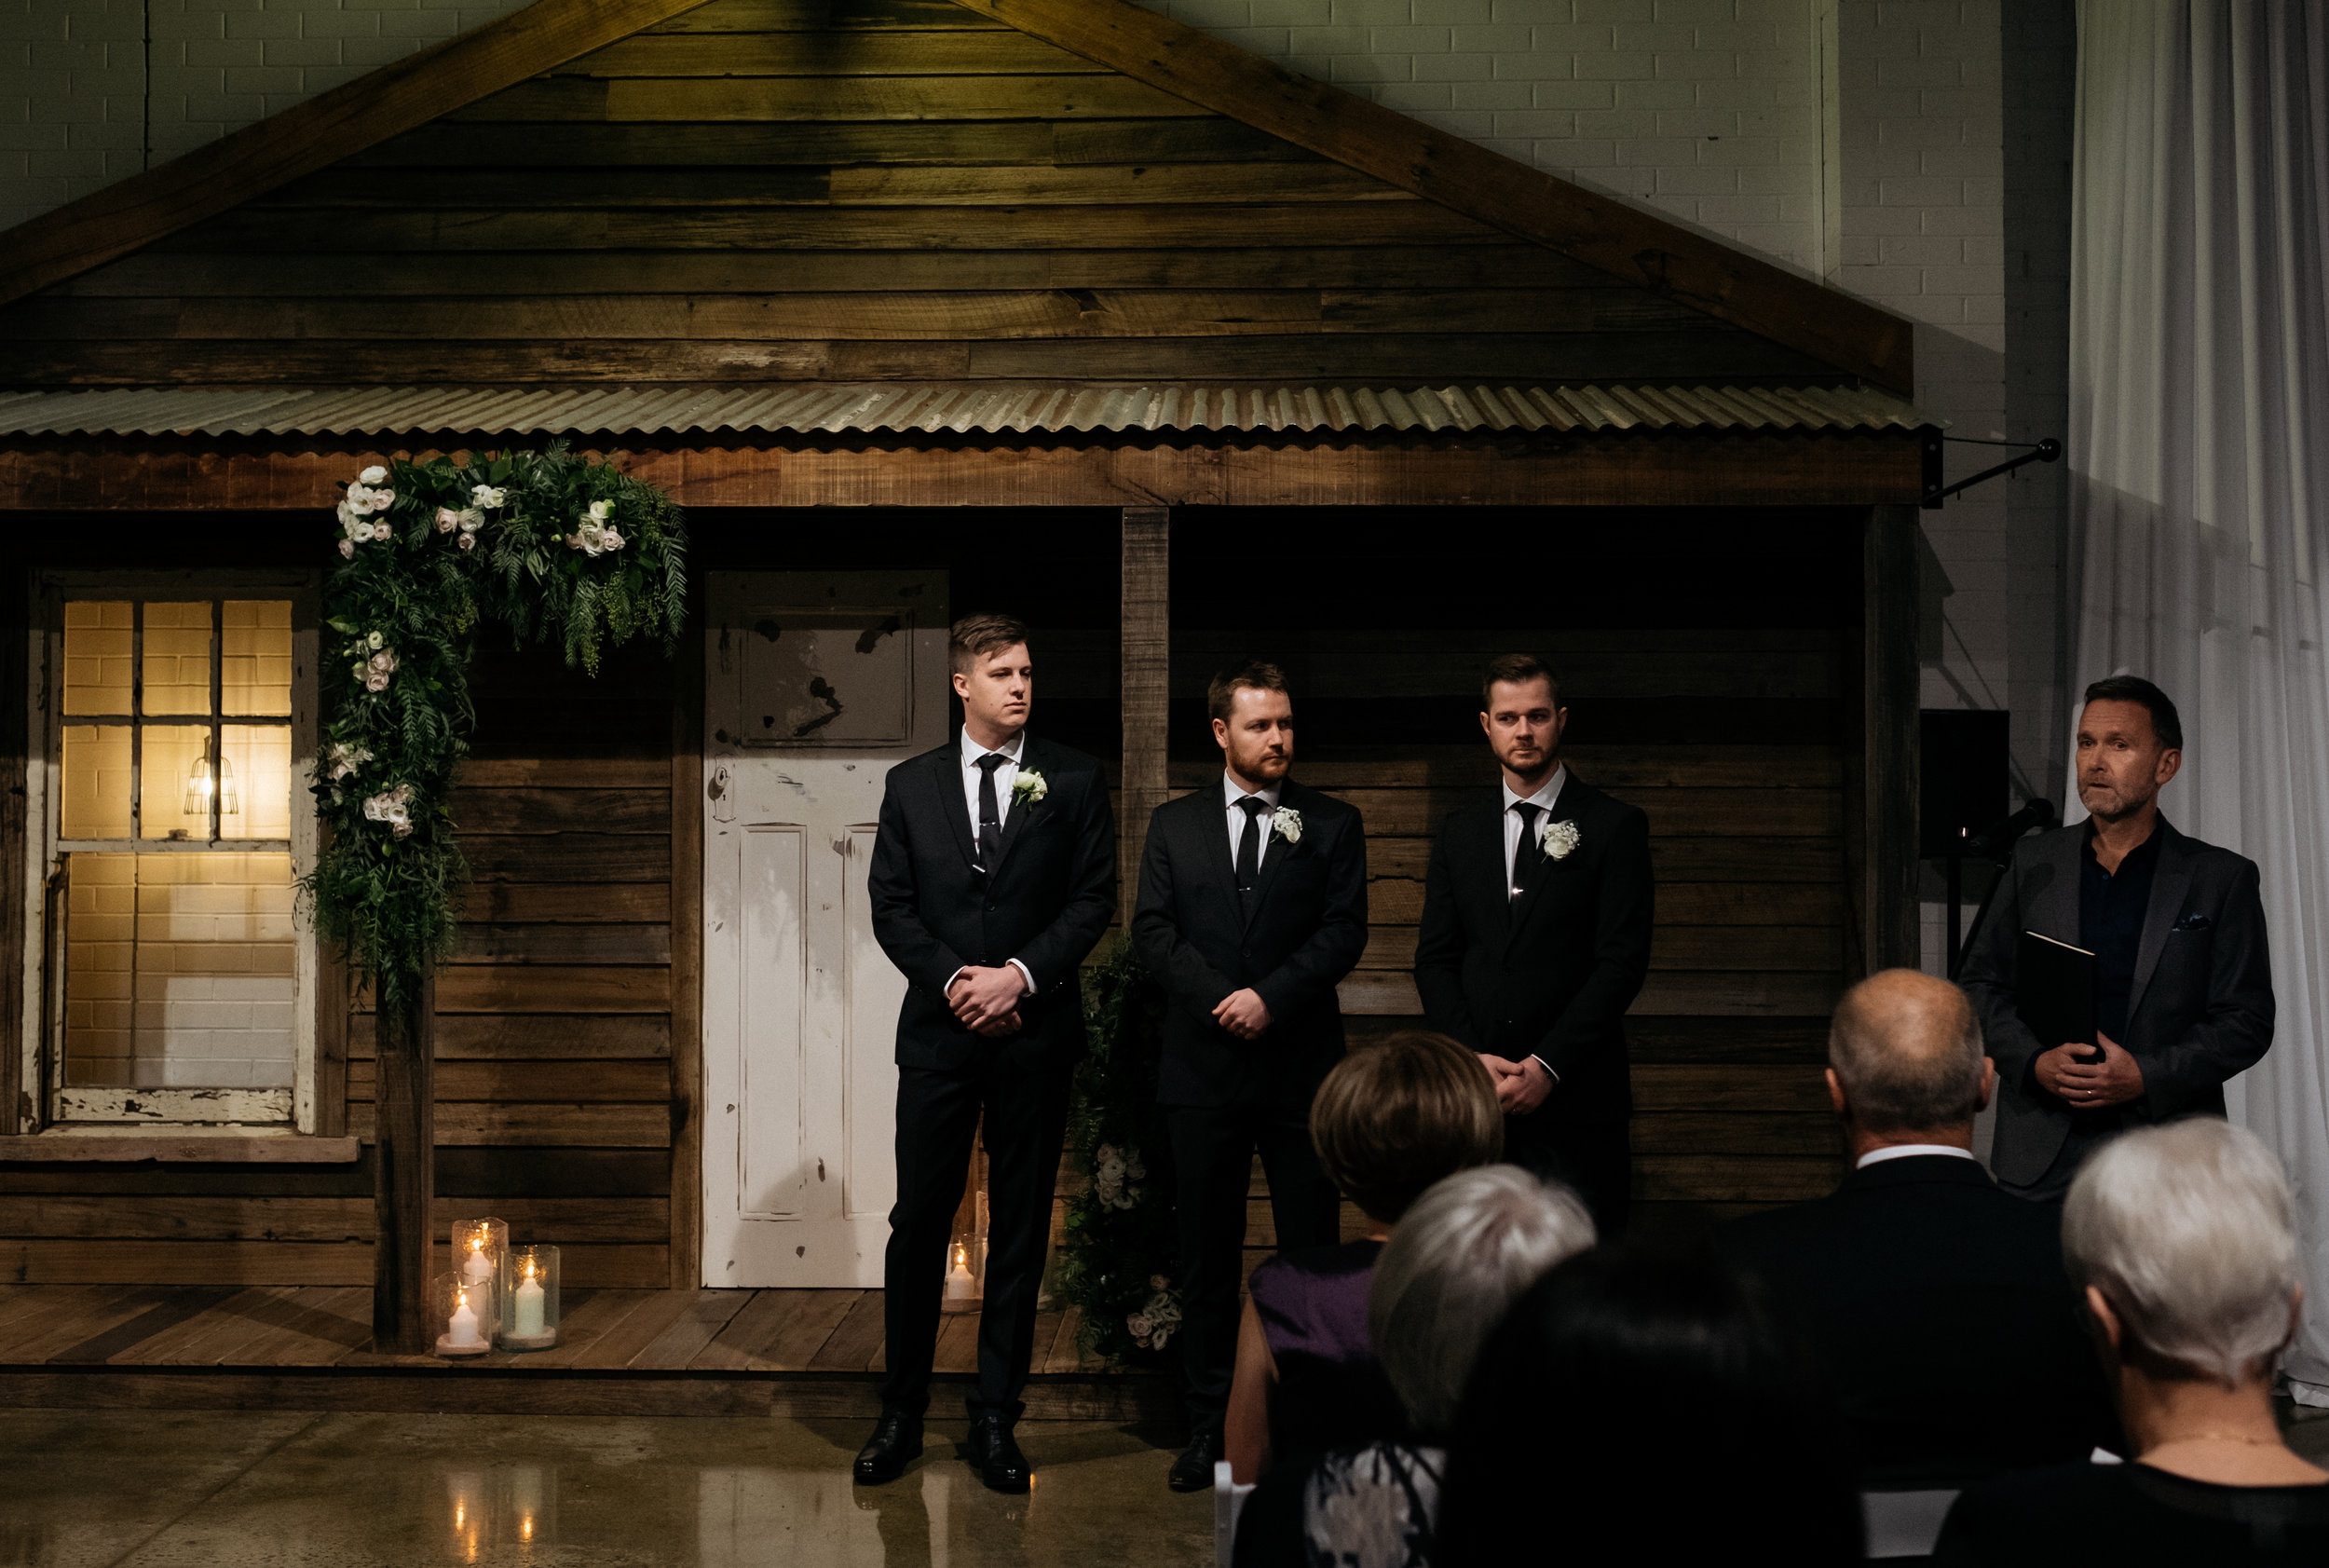 Groom, groomsmen and officiant awaiting the bride